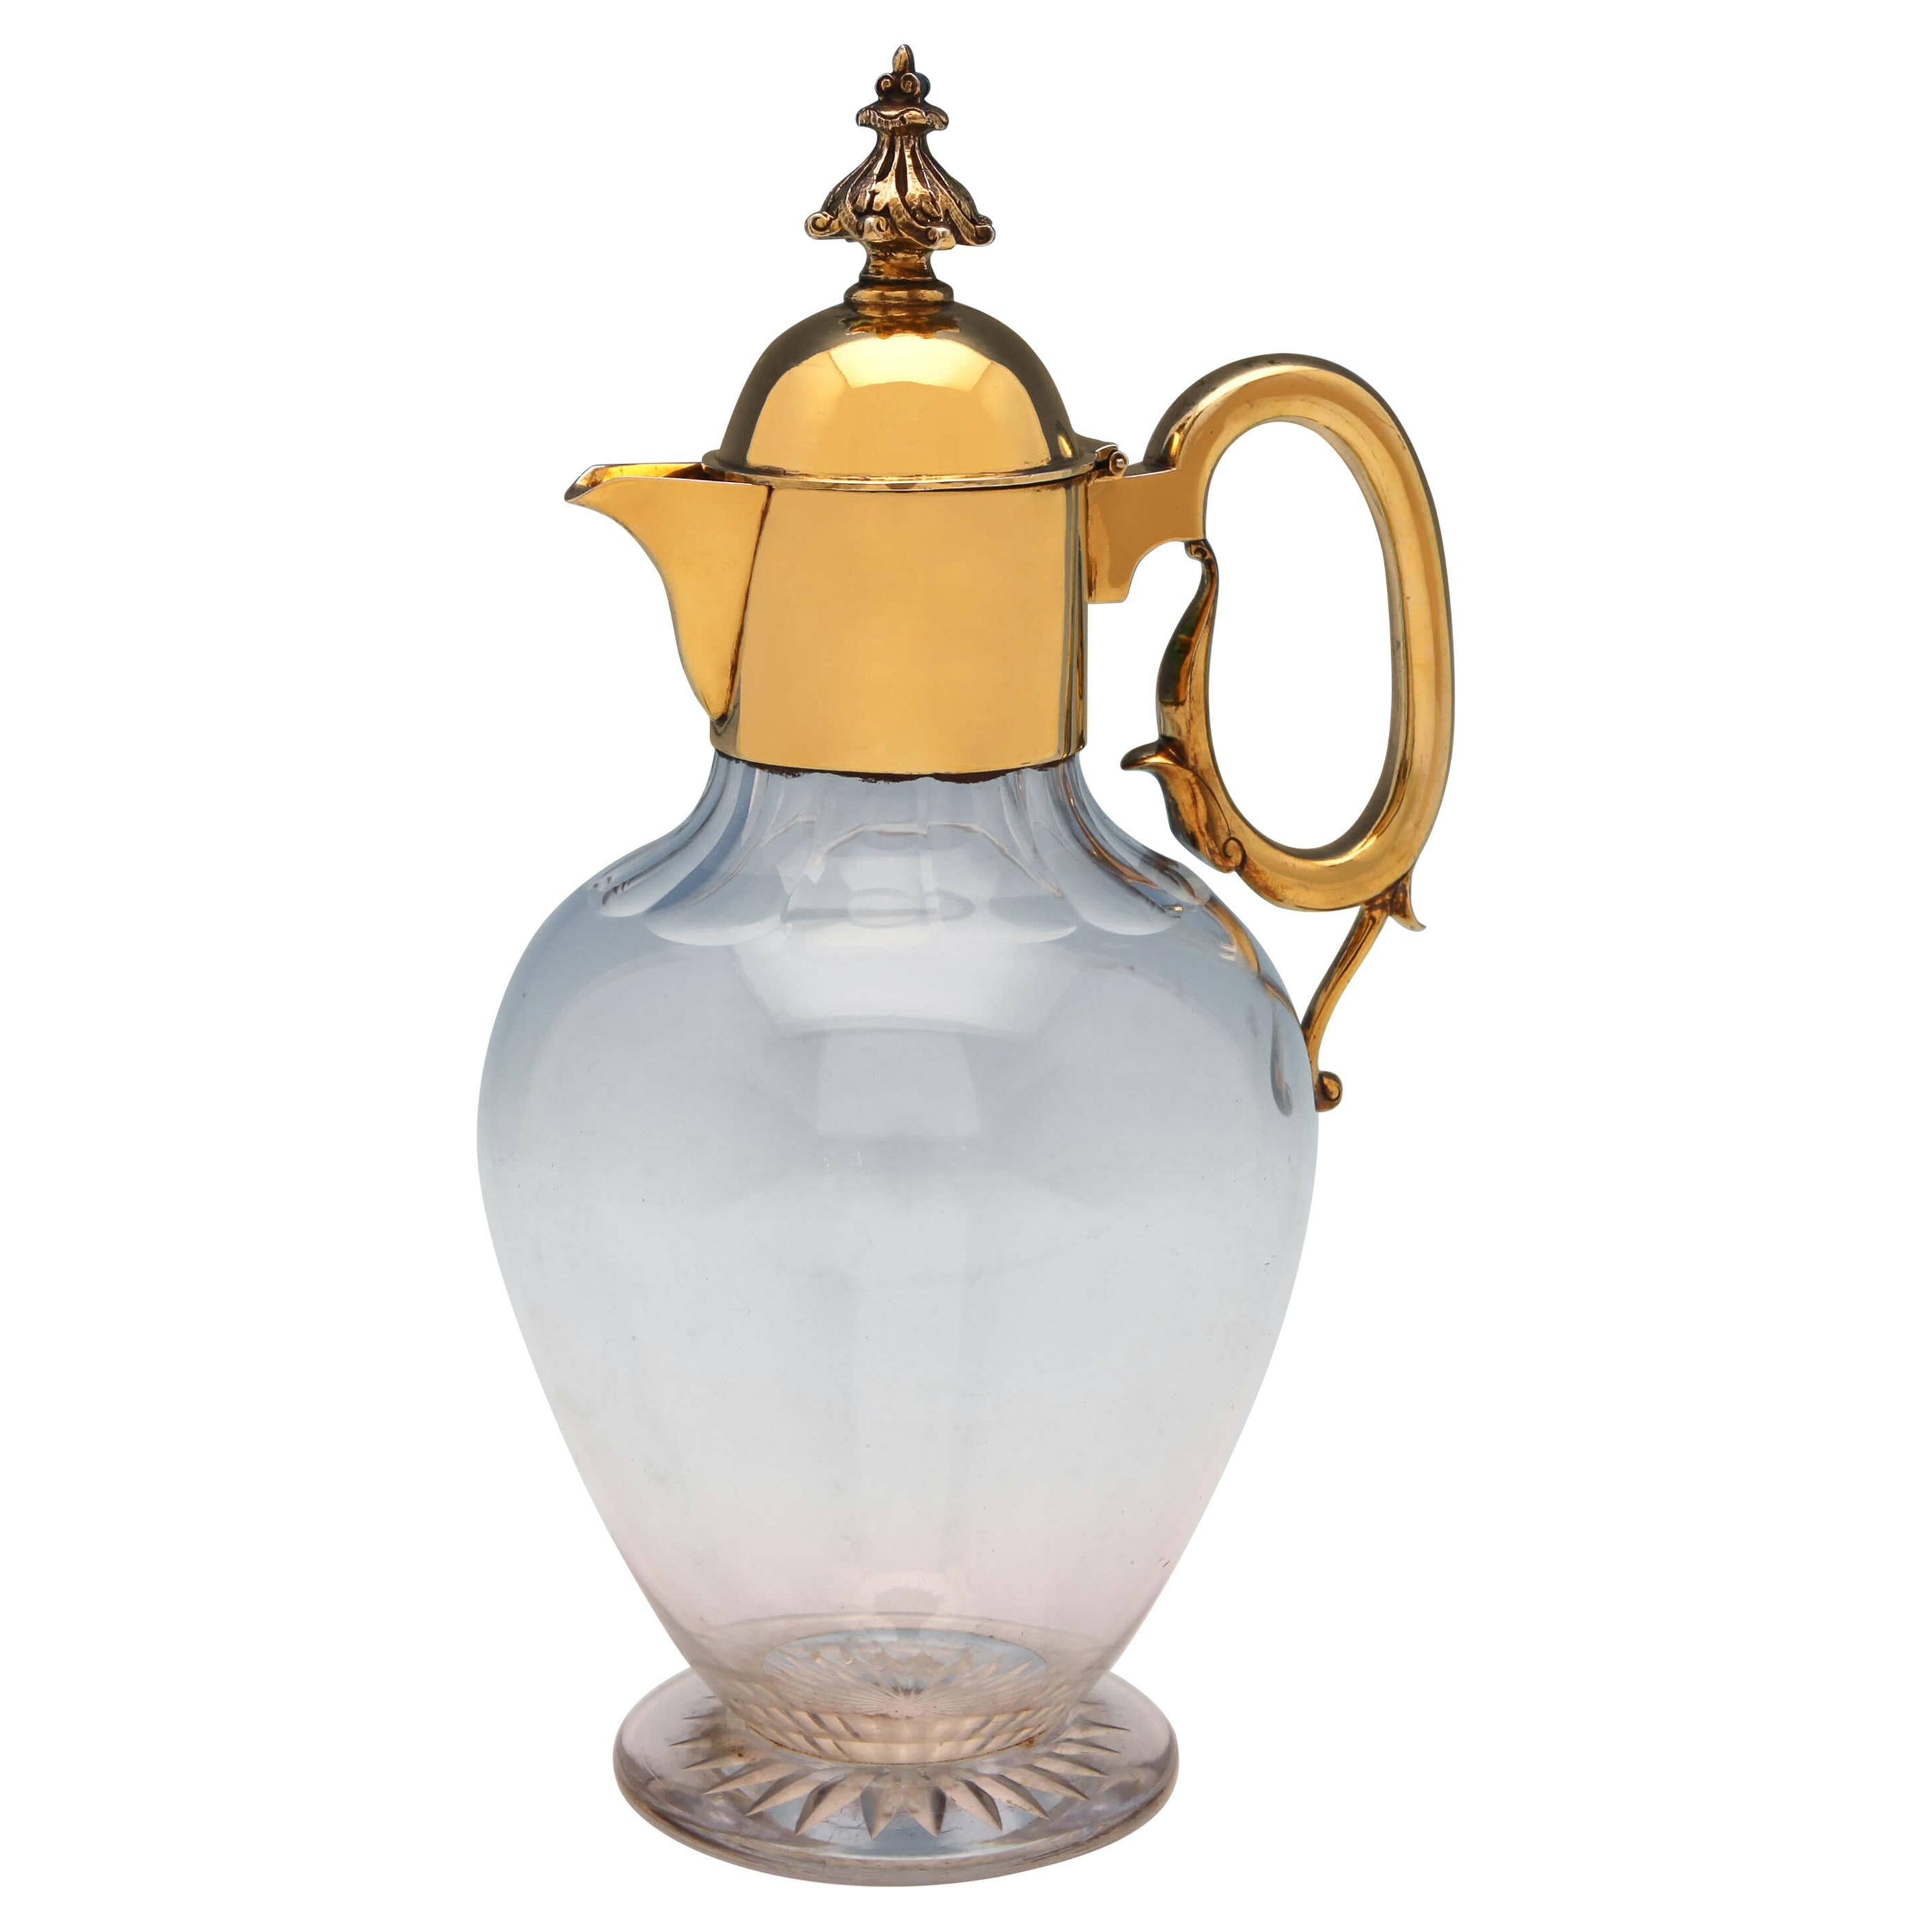 19th Century Victorian Antique Gilt Sterling Silver Claret Jug from 1898